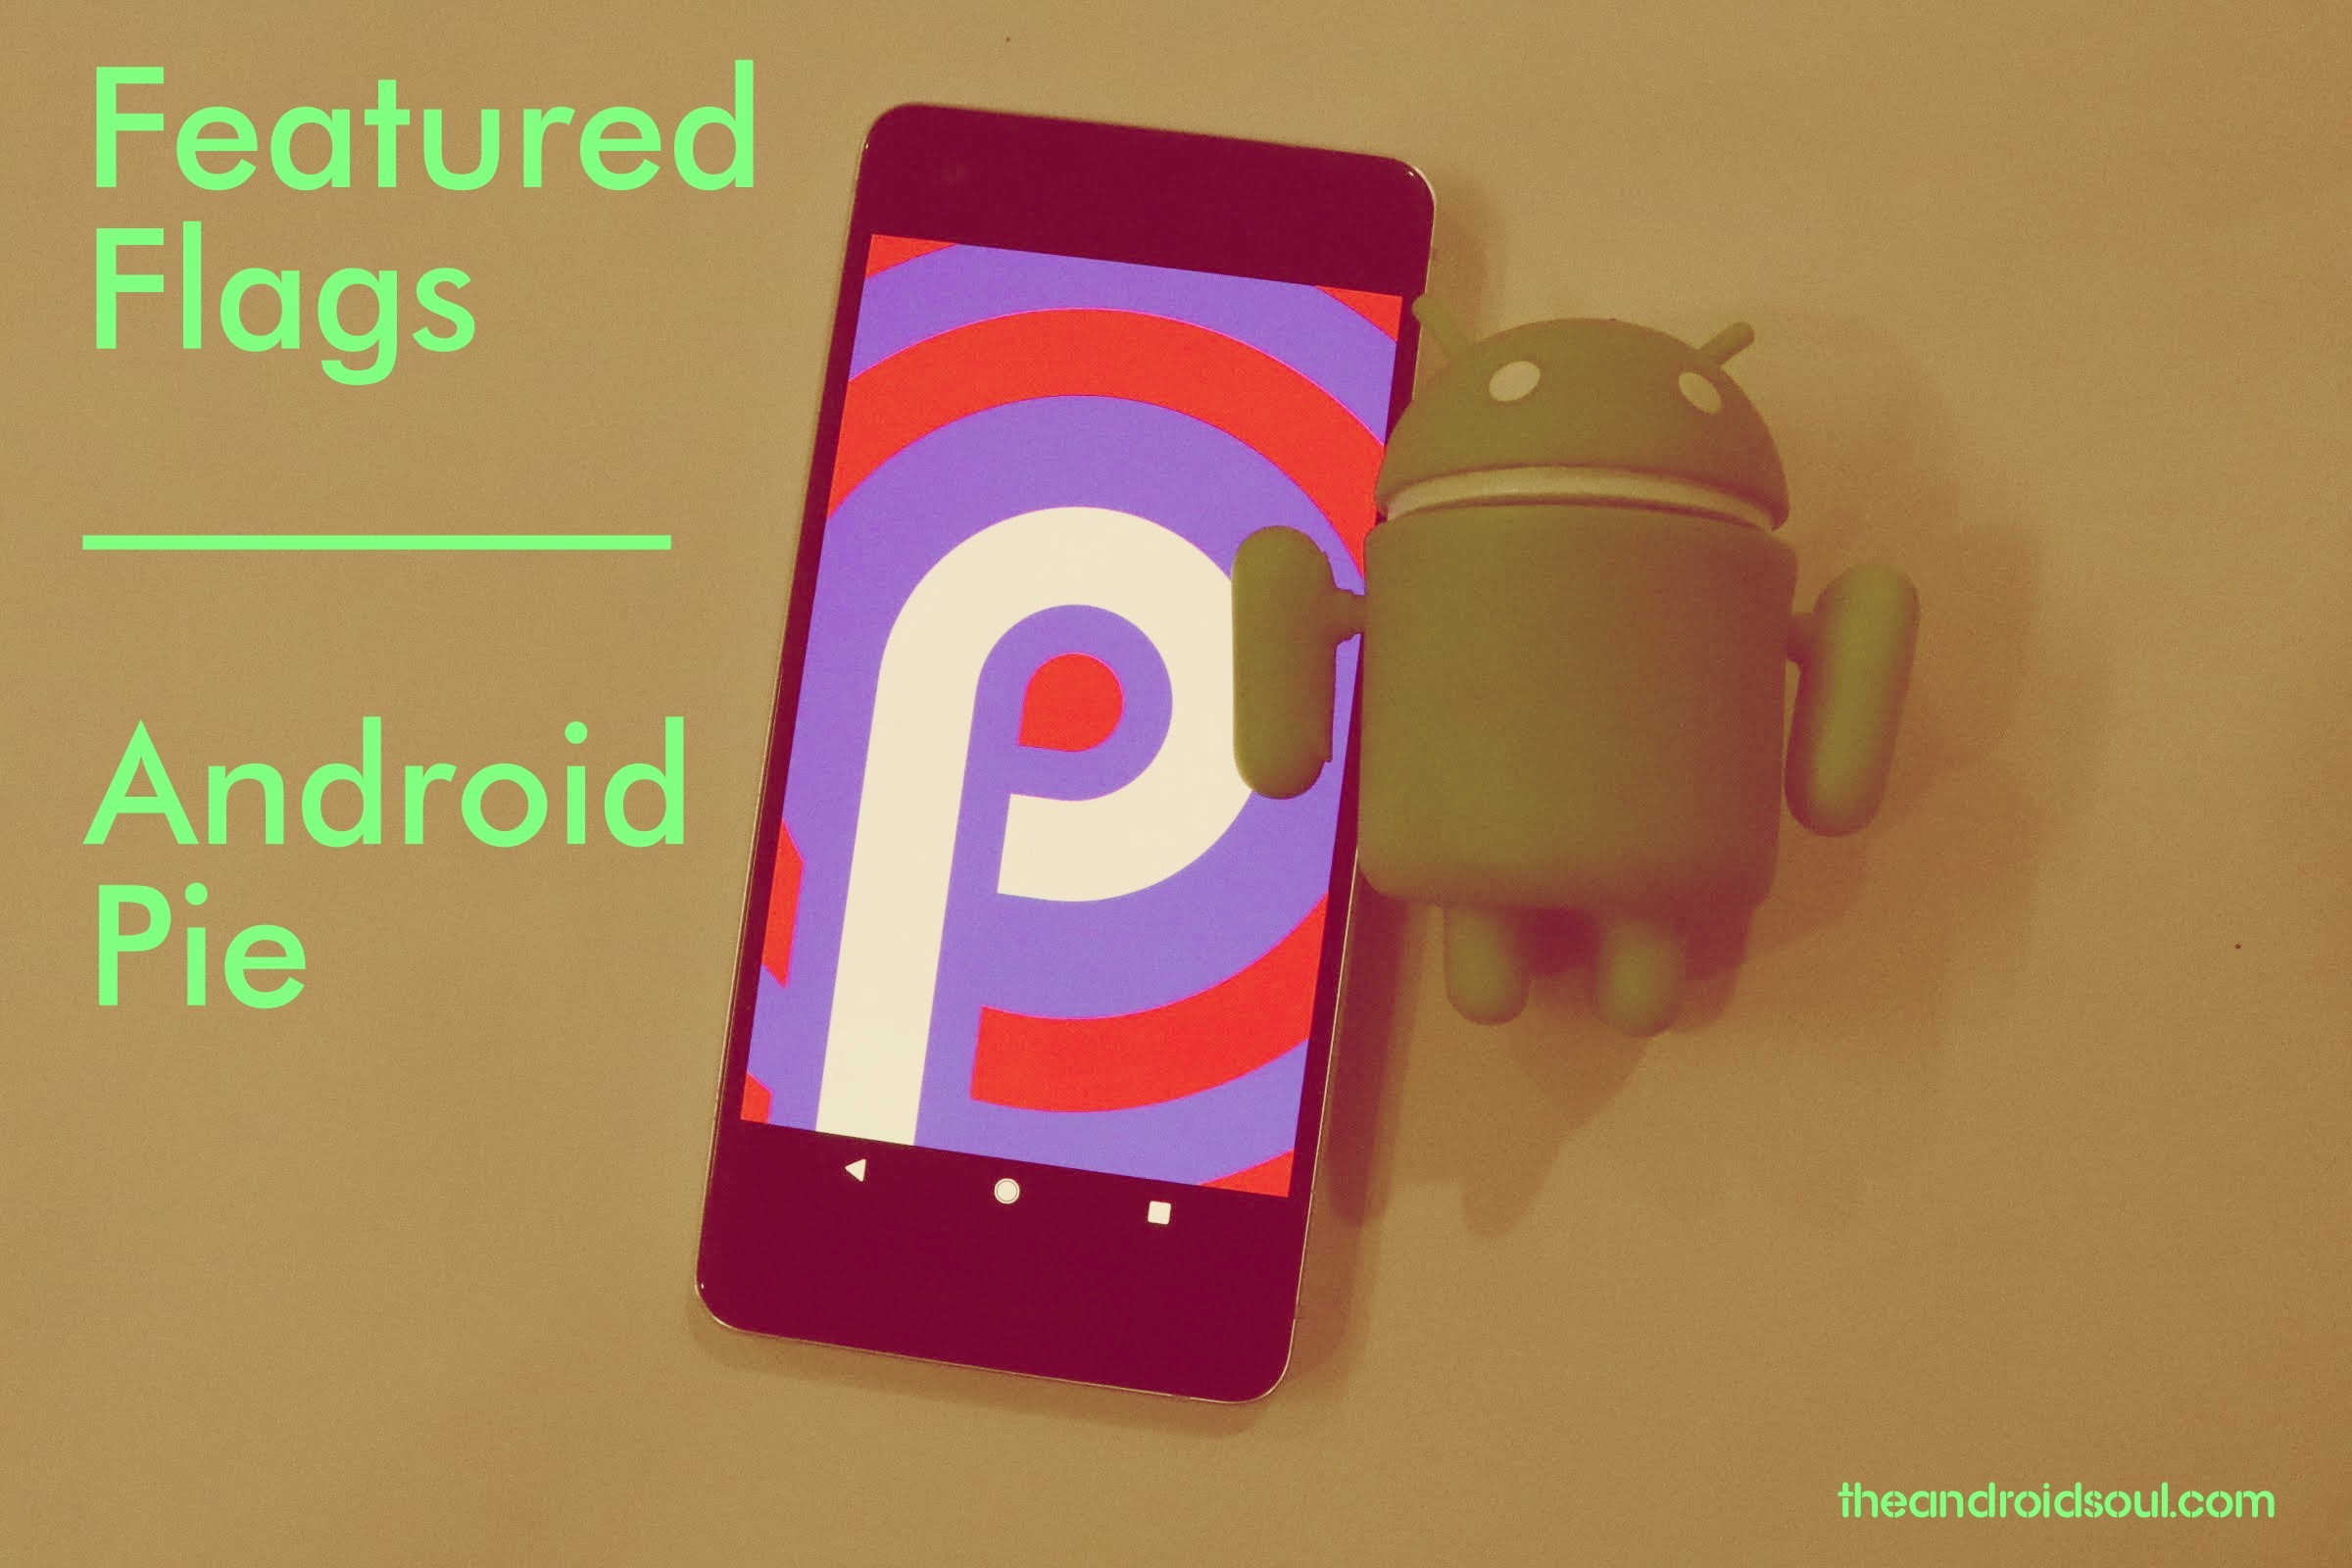 android pie featured flags